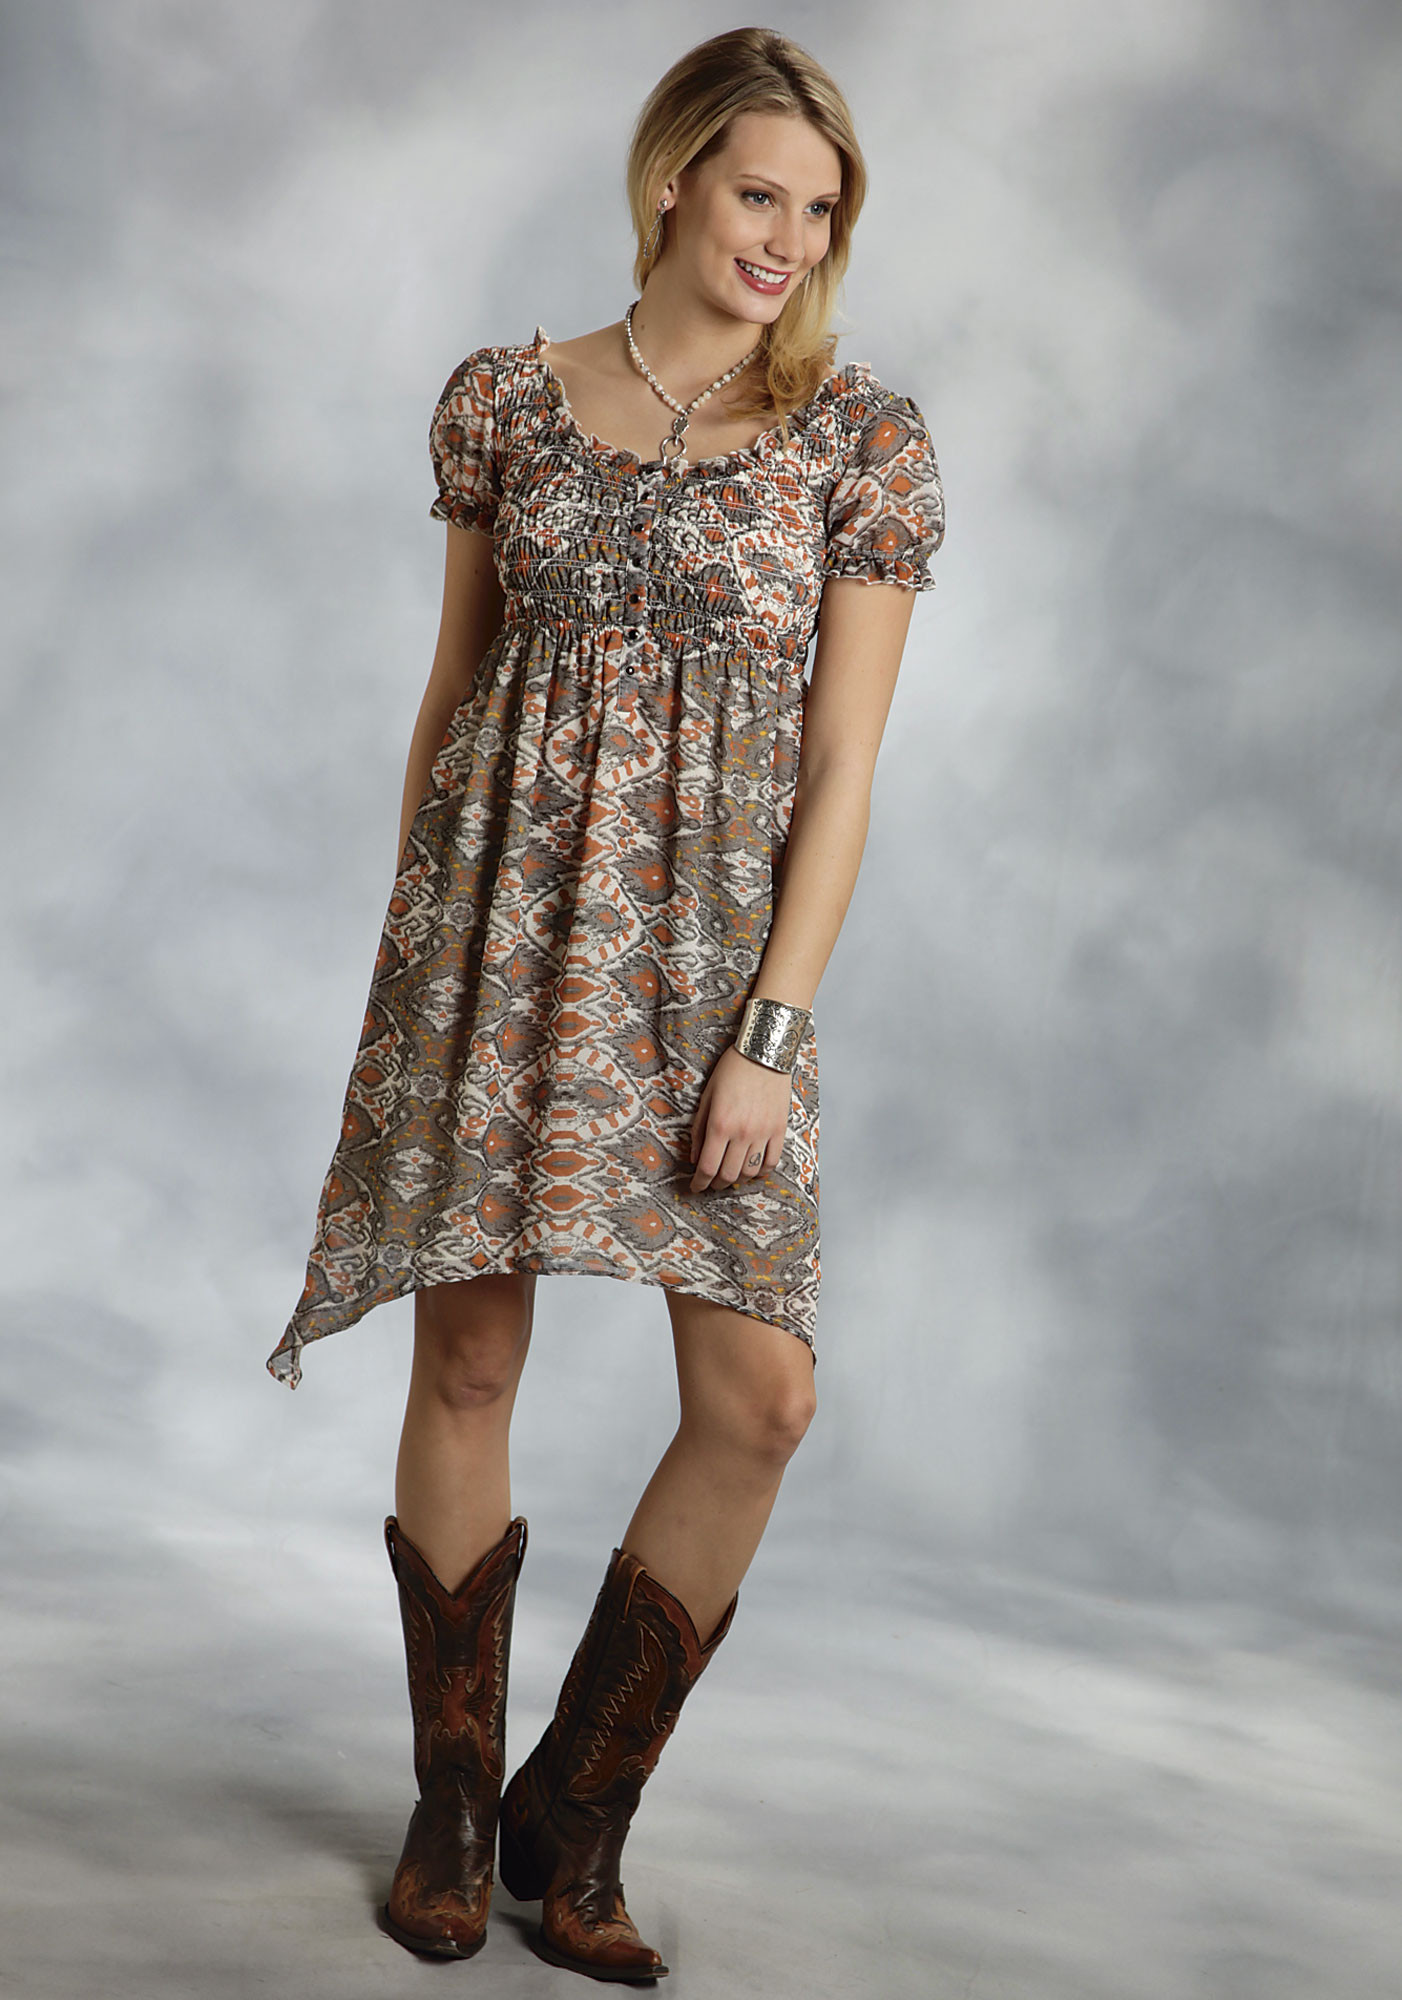 cowgirl dresses